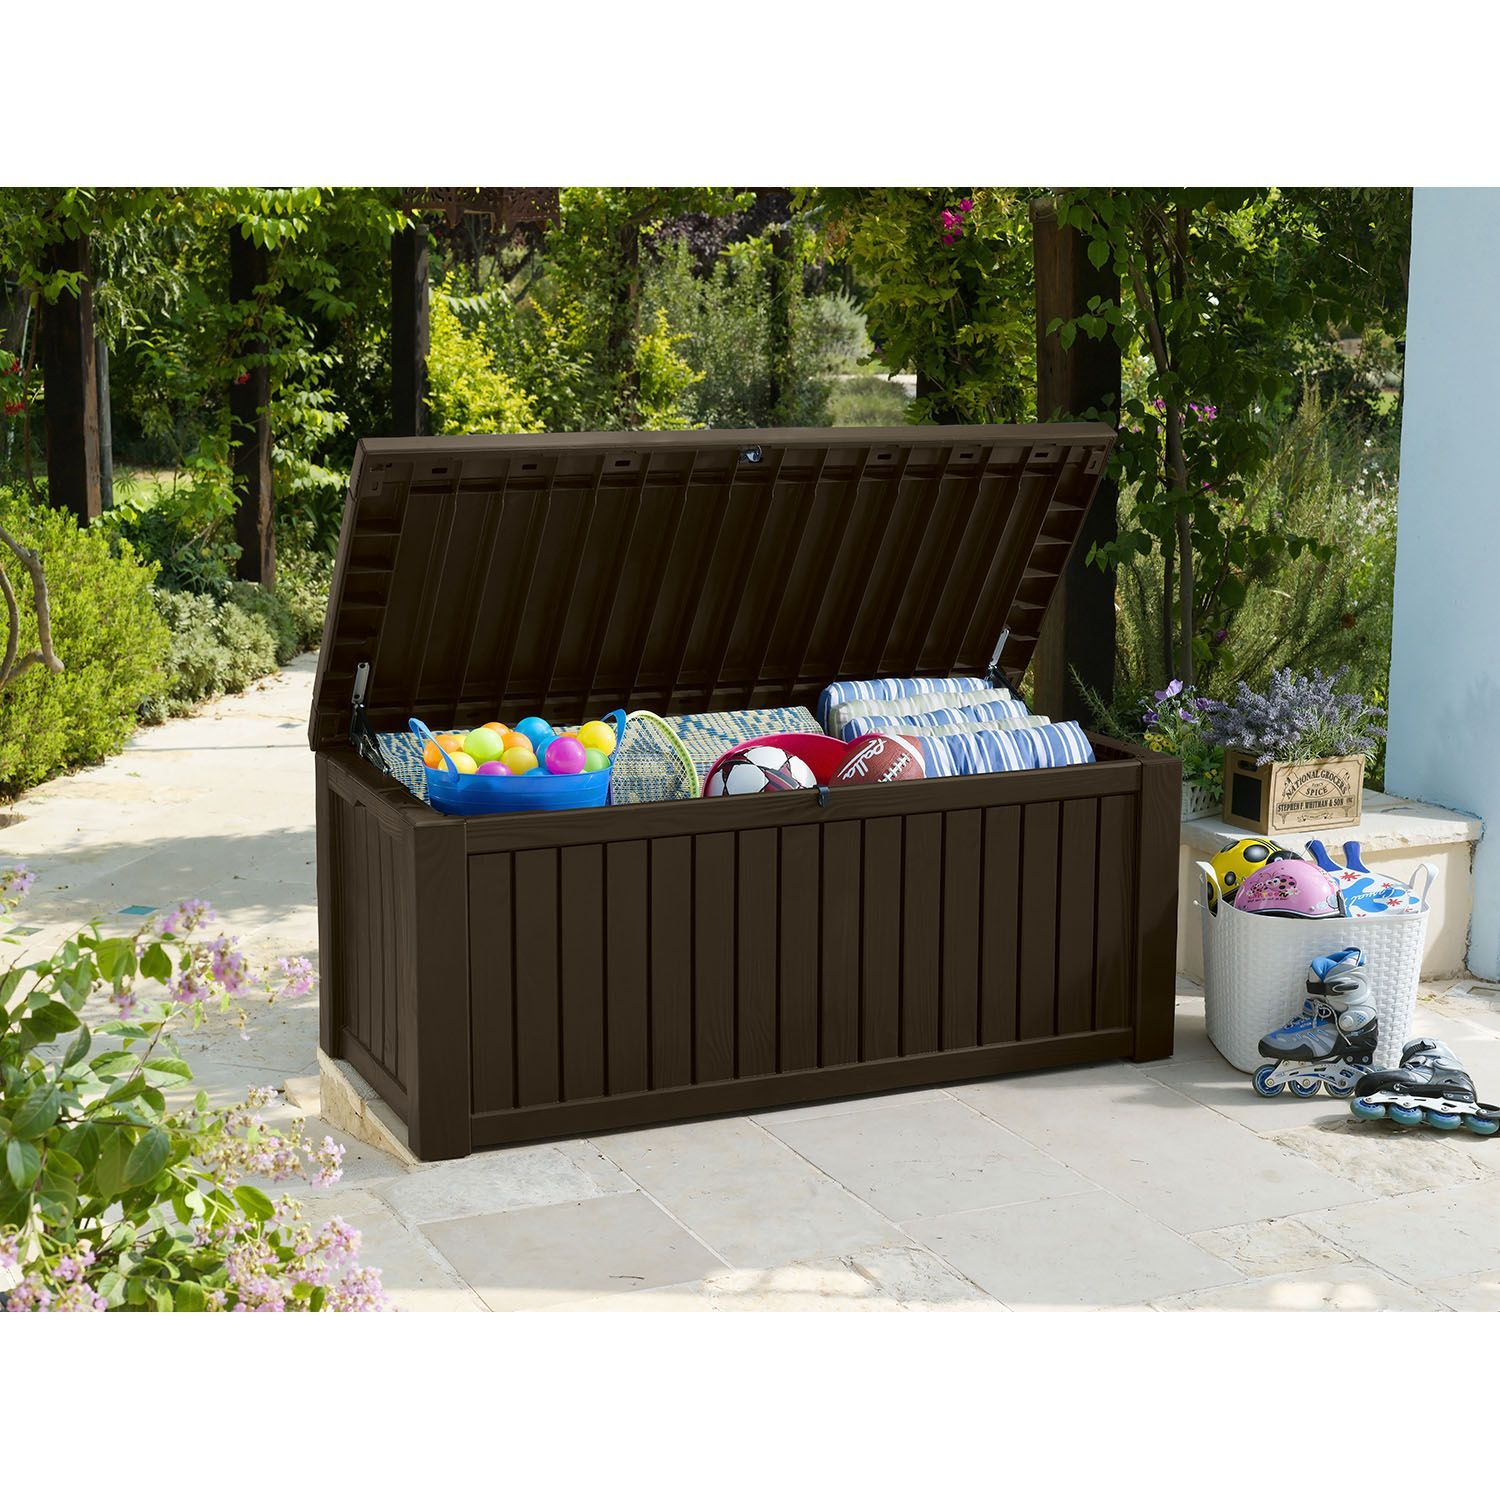 Keter Kissenbox Rockwood Keter Rockwood Outdoor Plastic Deck Storage Container Box 150 Gal